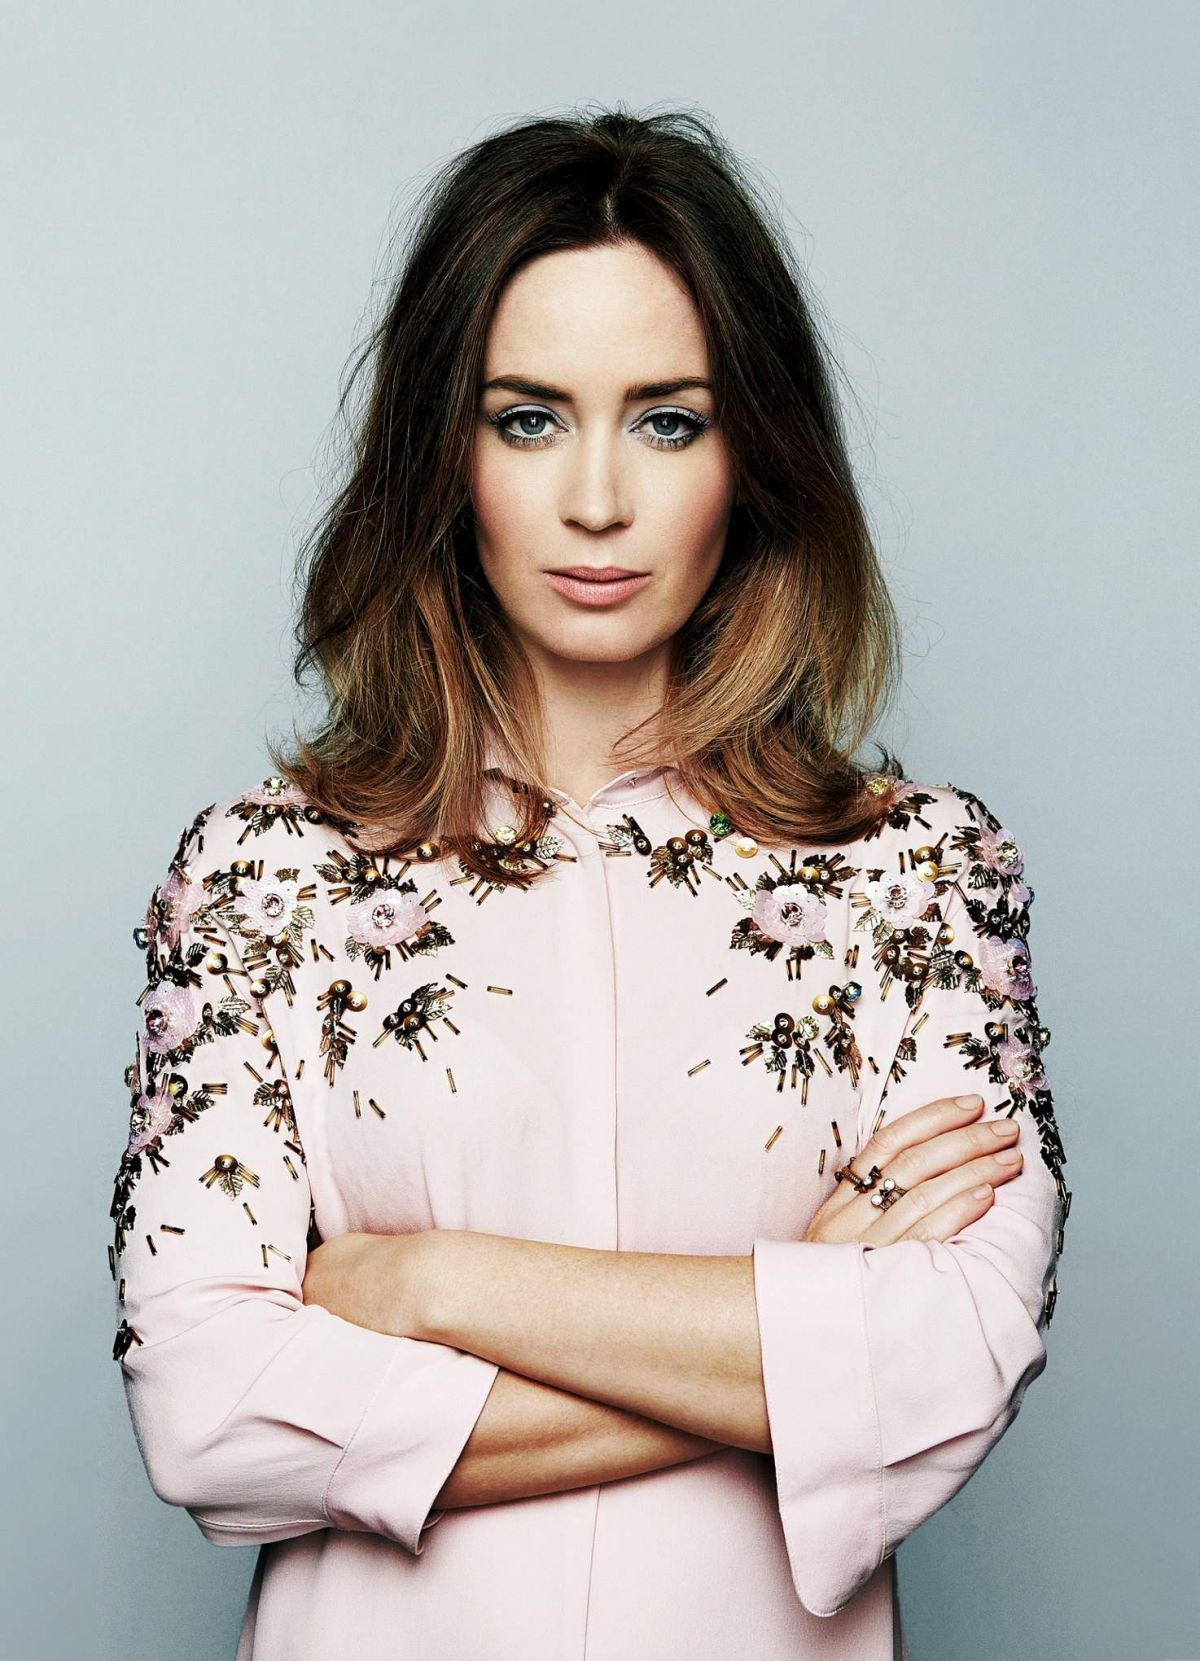 emily blunt movies and tv shows